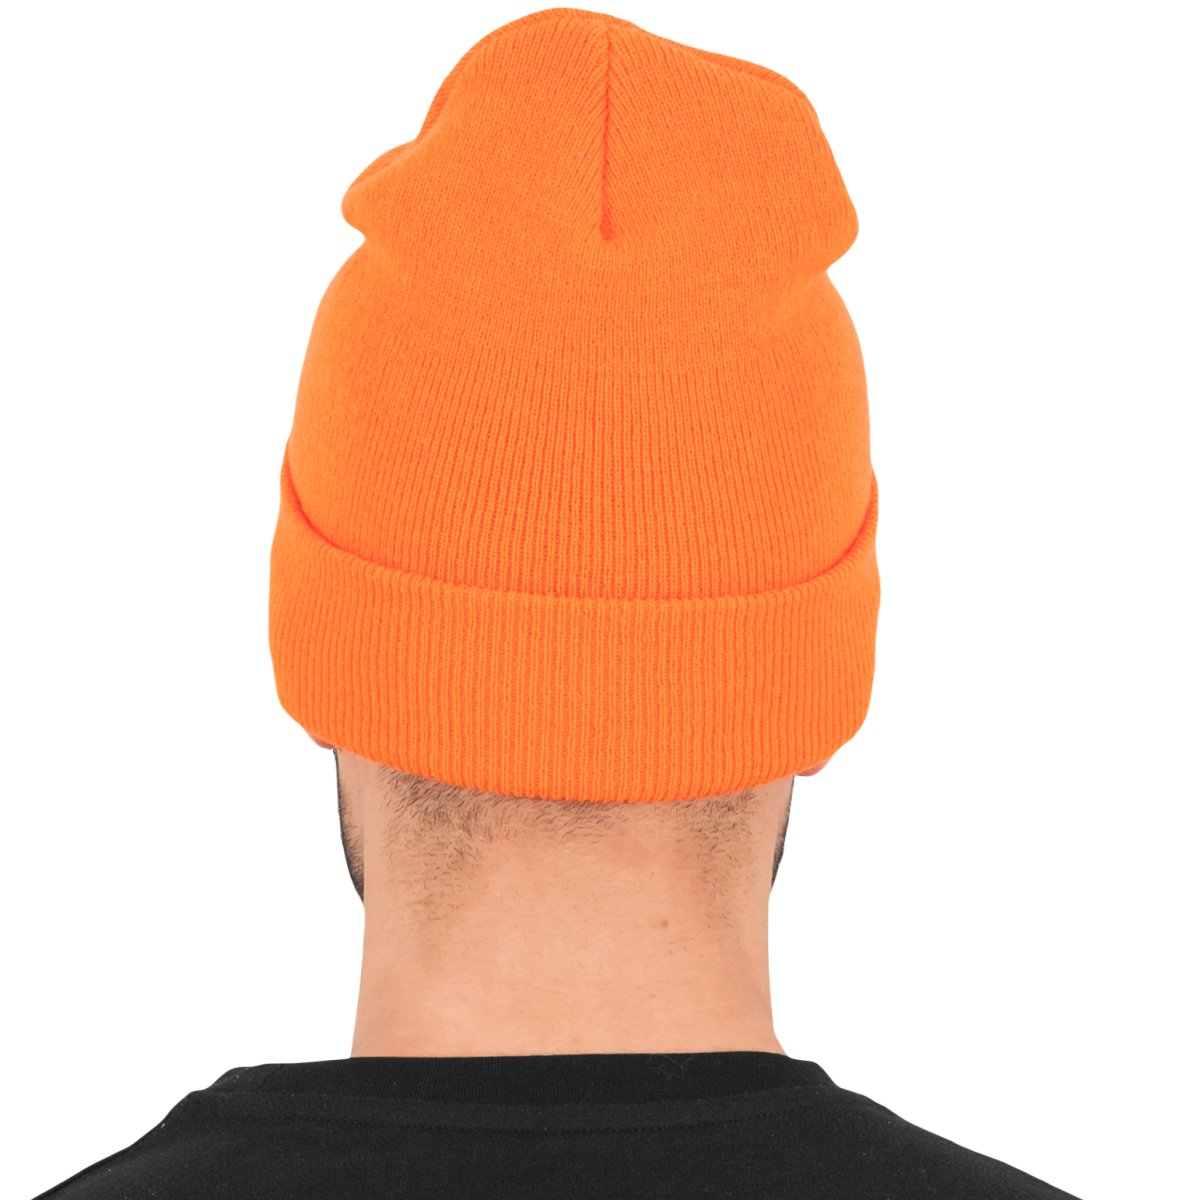 c97a2e0b87e Heavyweight Long Beanie Urban Classics Flexfit Hat Yupoong Blaze Orange.  About this product. Picture 1 of 4  Picture 2 of 4  Picture 3 of 4  Picture  4 of 4